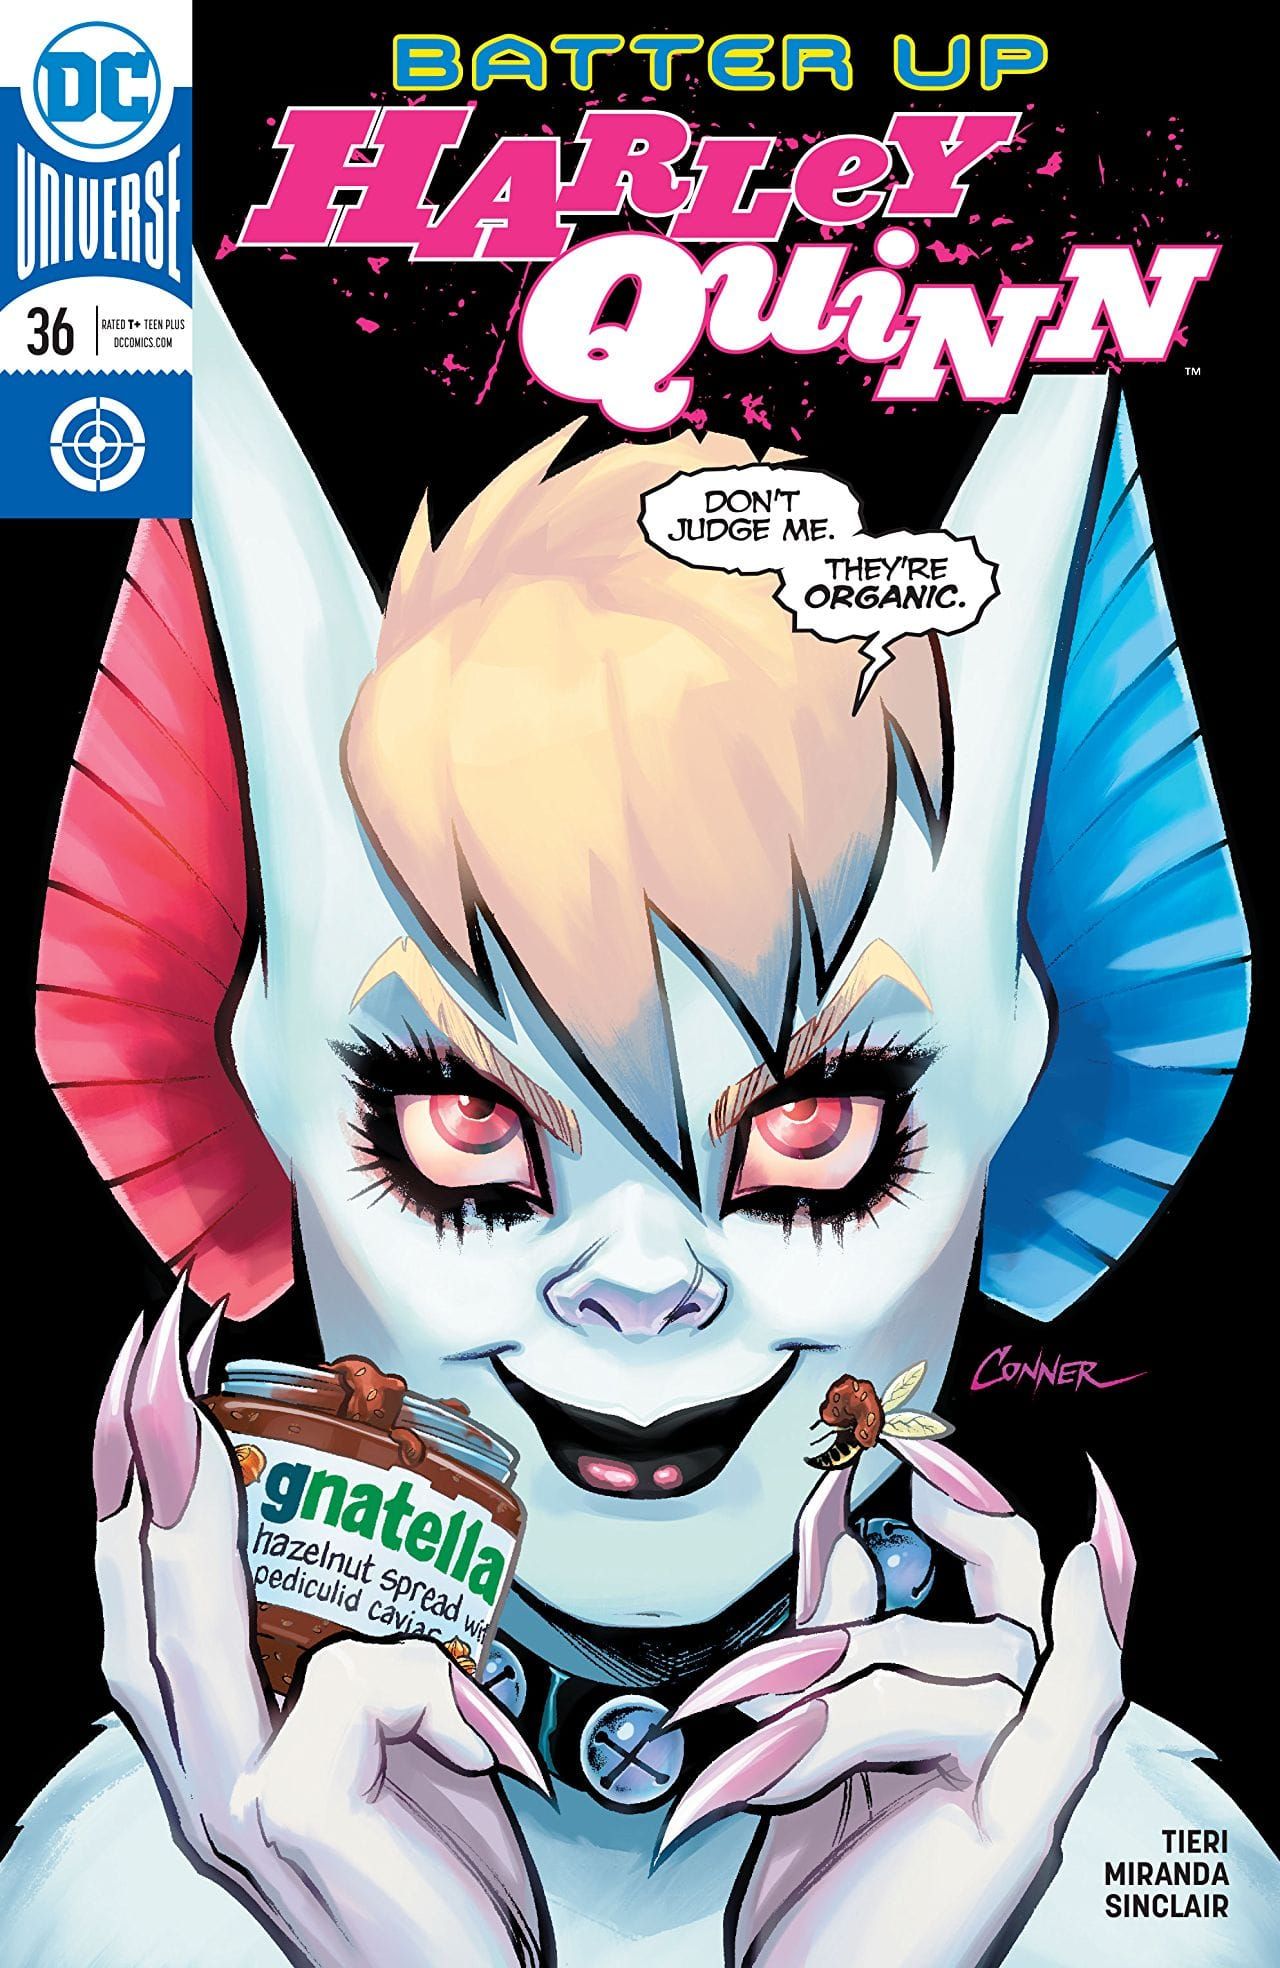 Harley Quinn #35 and #36 review: Transition period